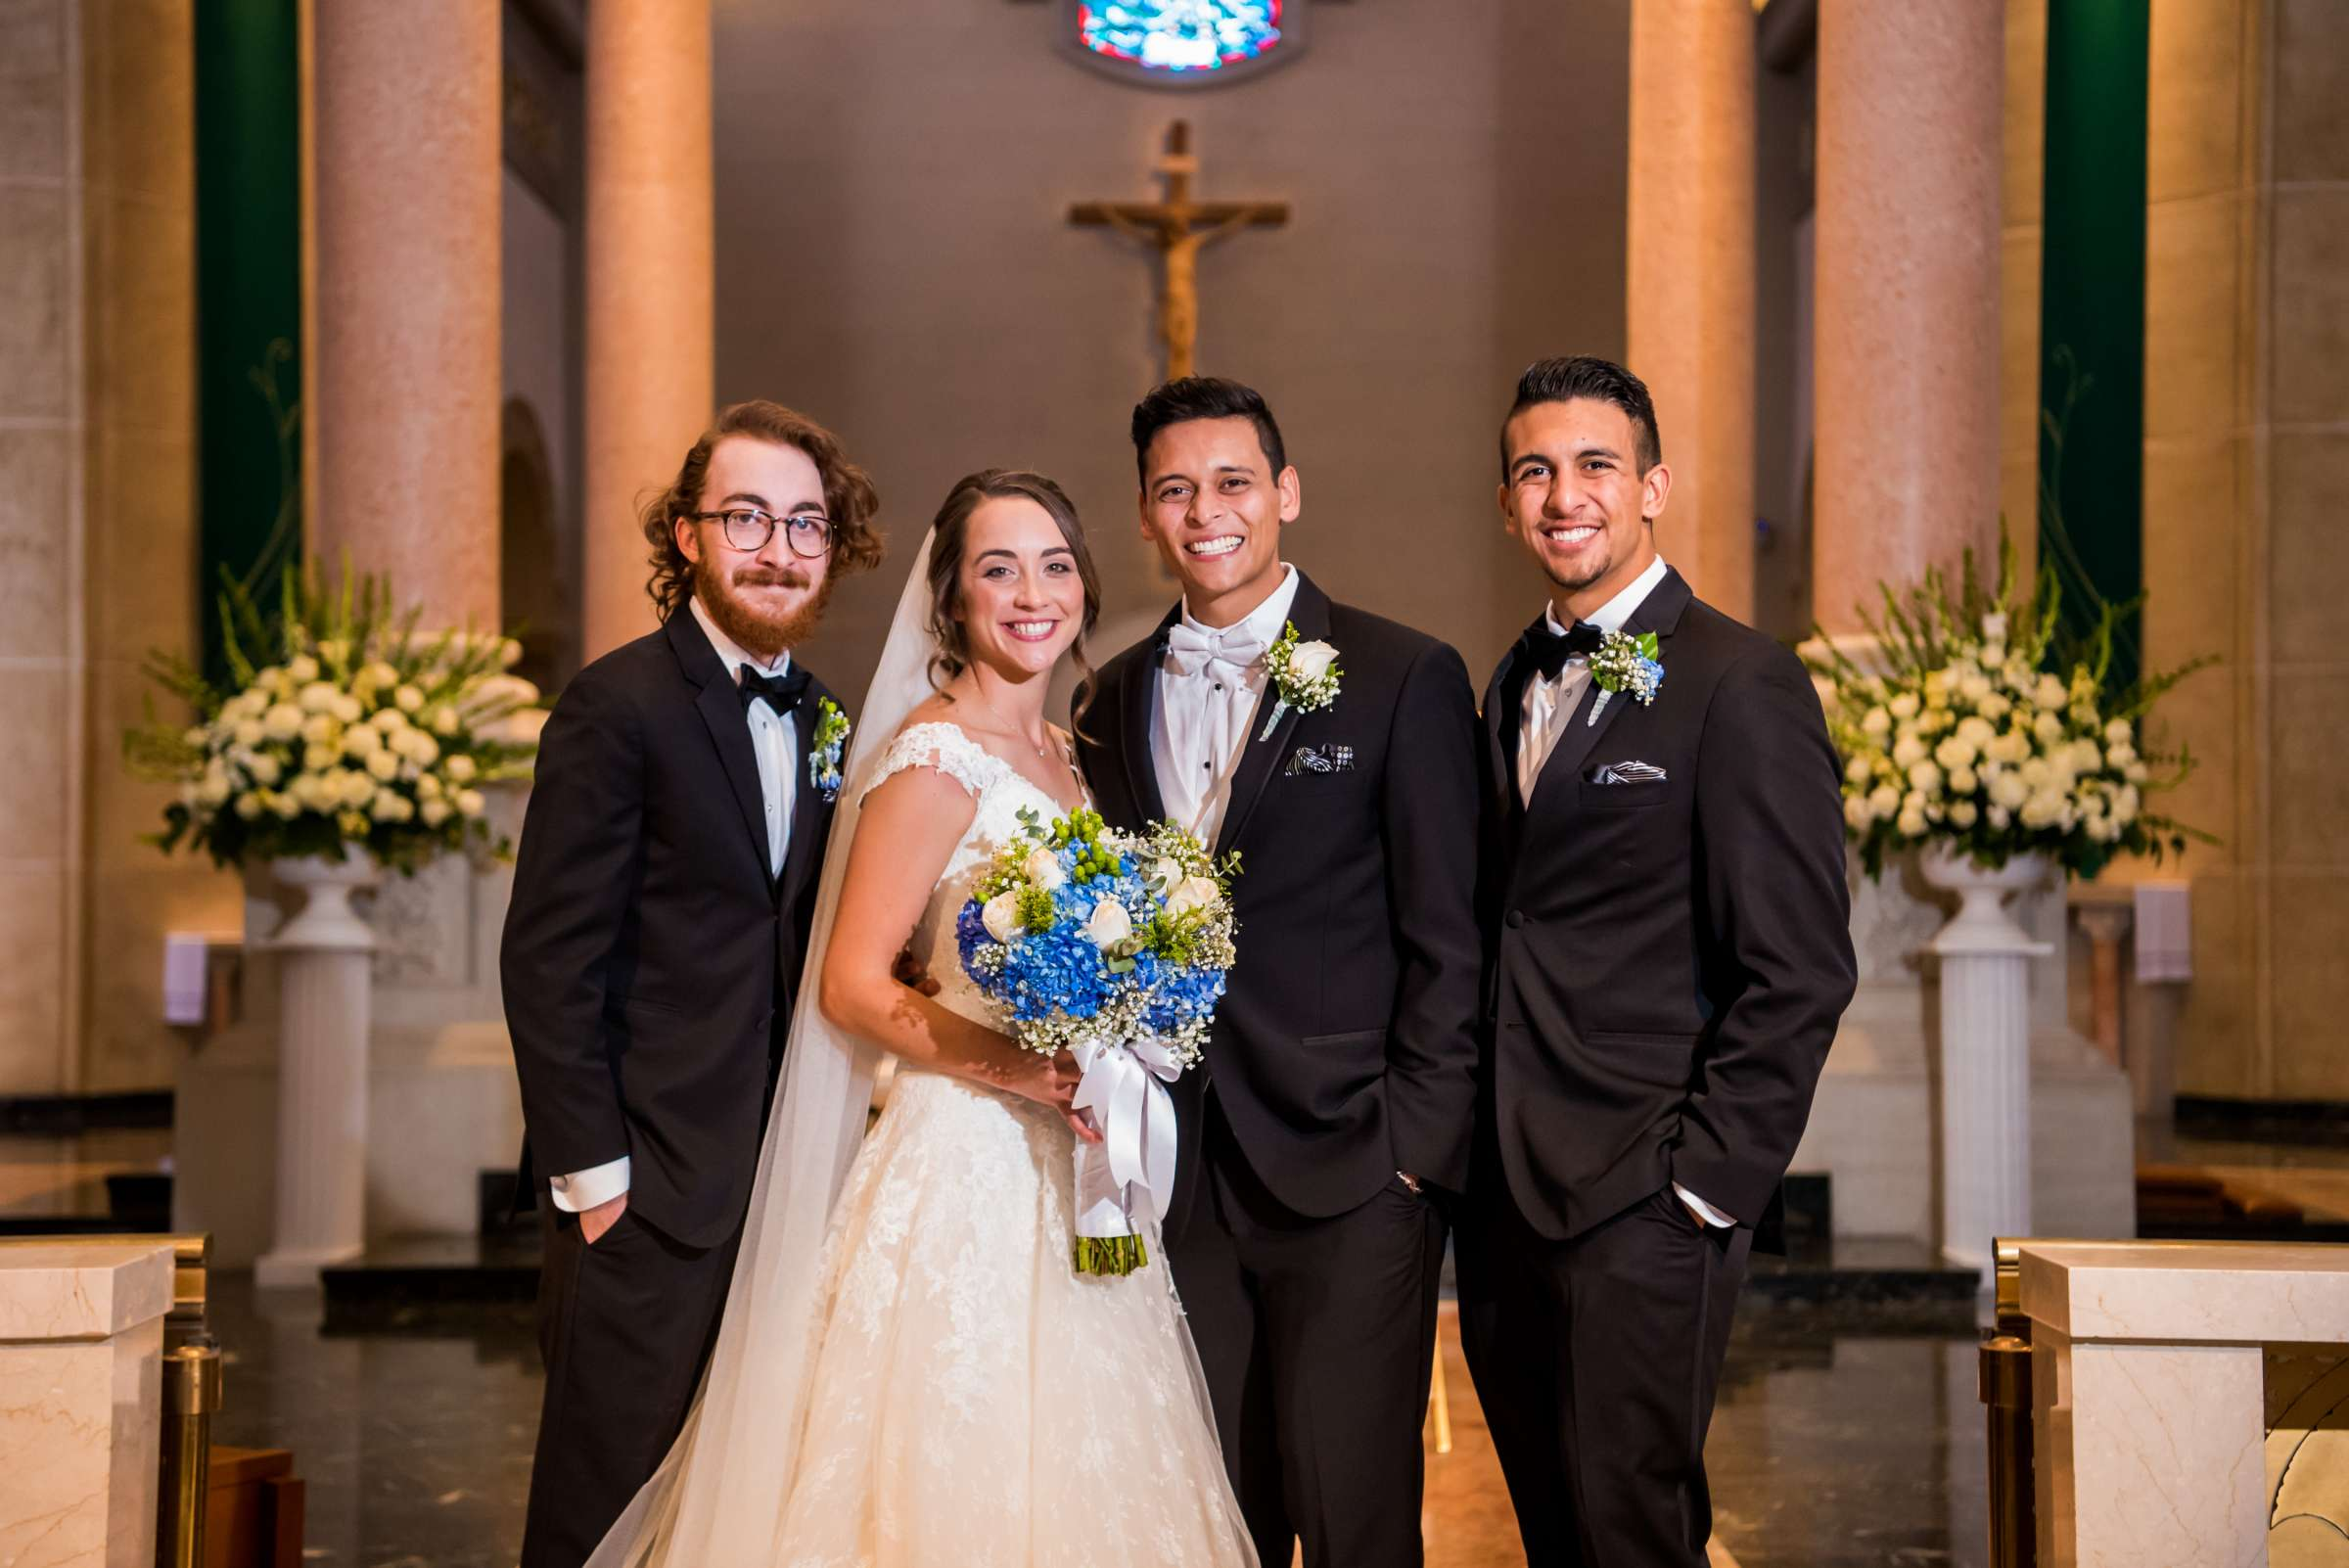 The Immaculata Wedding, Arianna and Jonah Wedding Photo #138 by True Photography